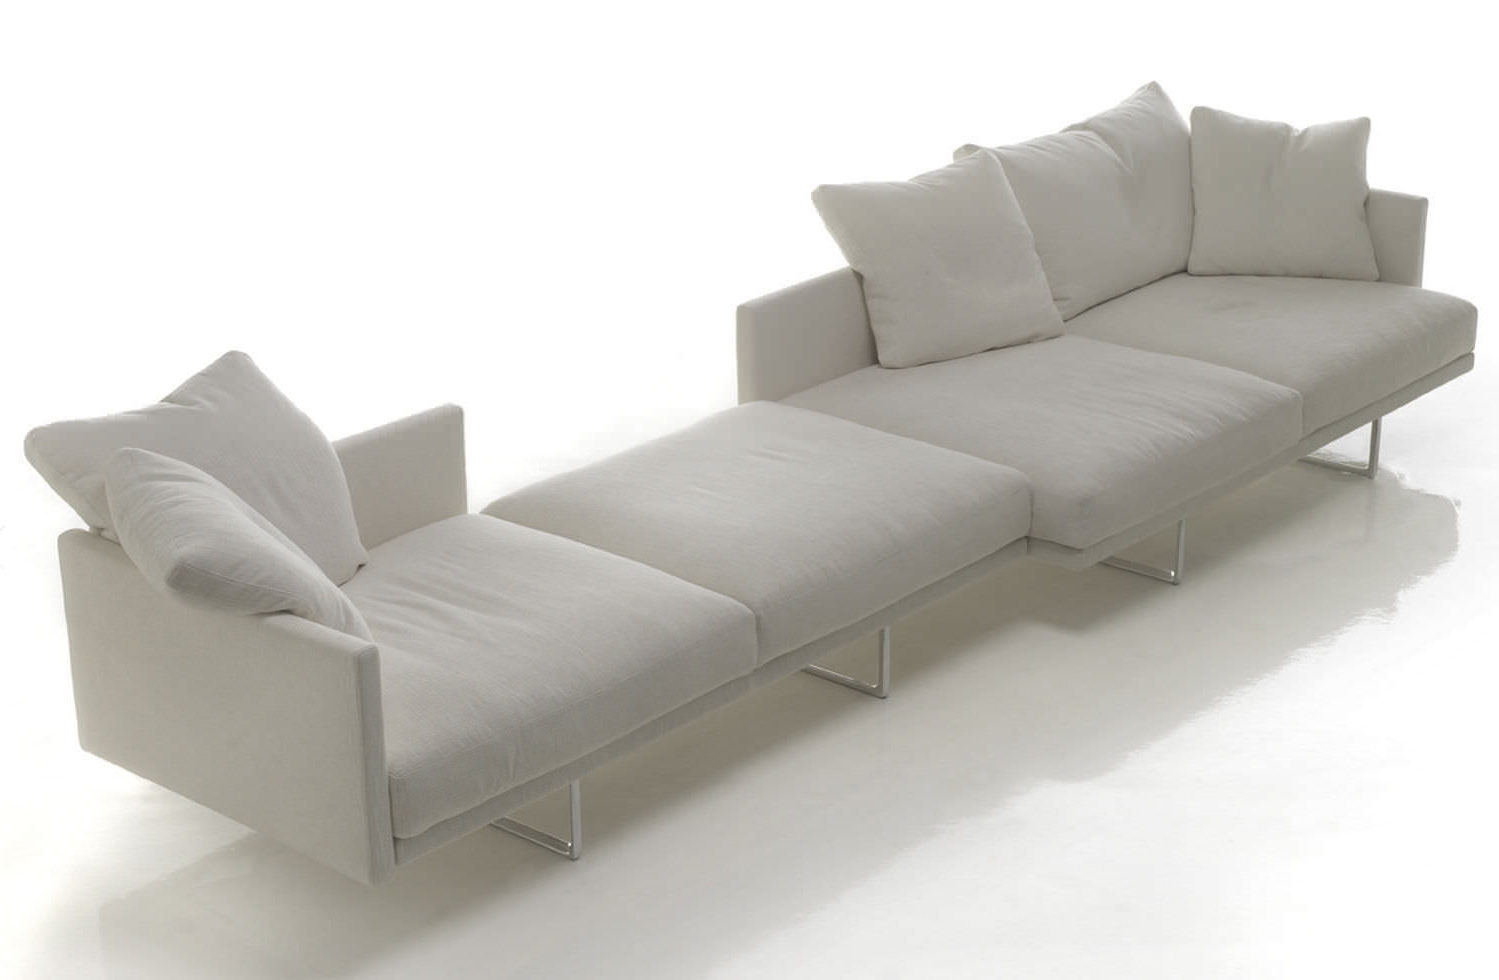 Stunning Design Ideas Of Modular Sofas For Small Spaces (View 12 of 15)